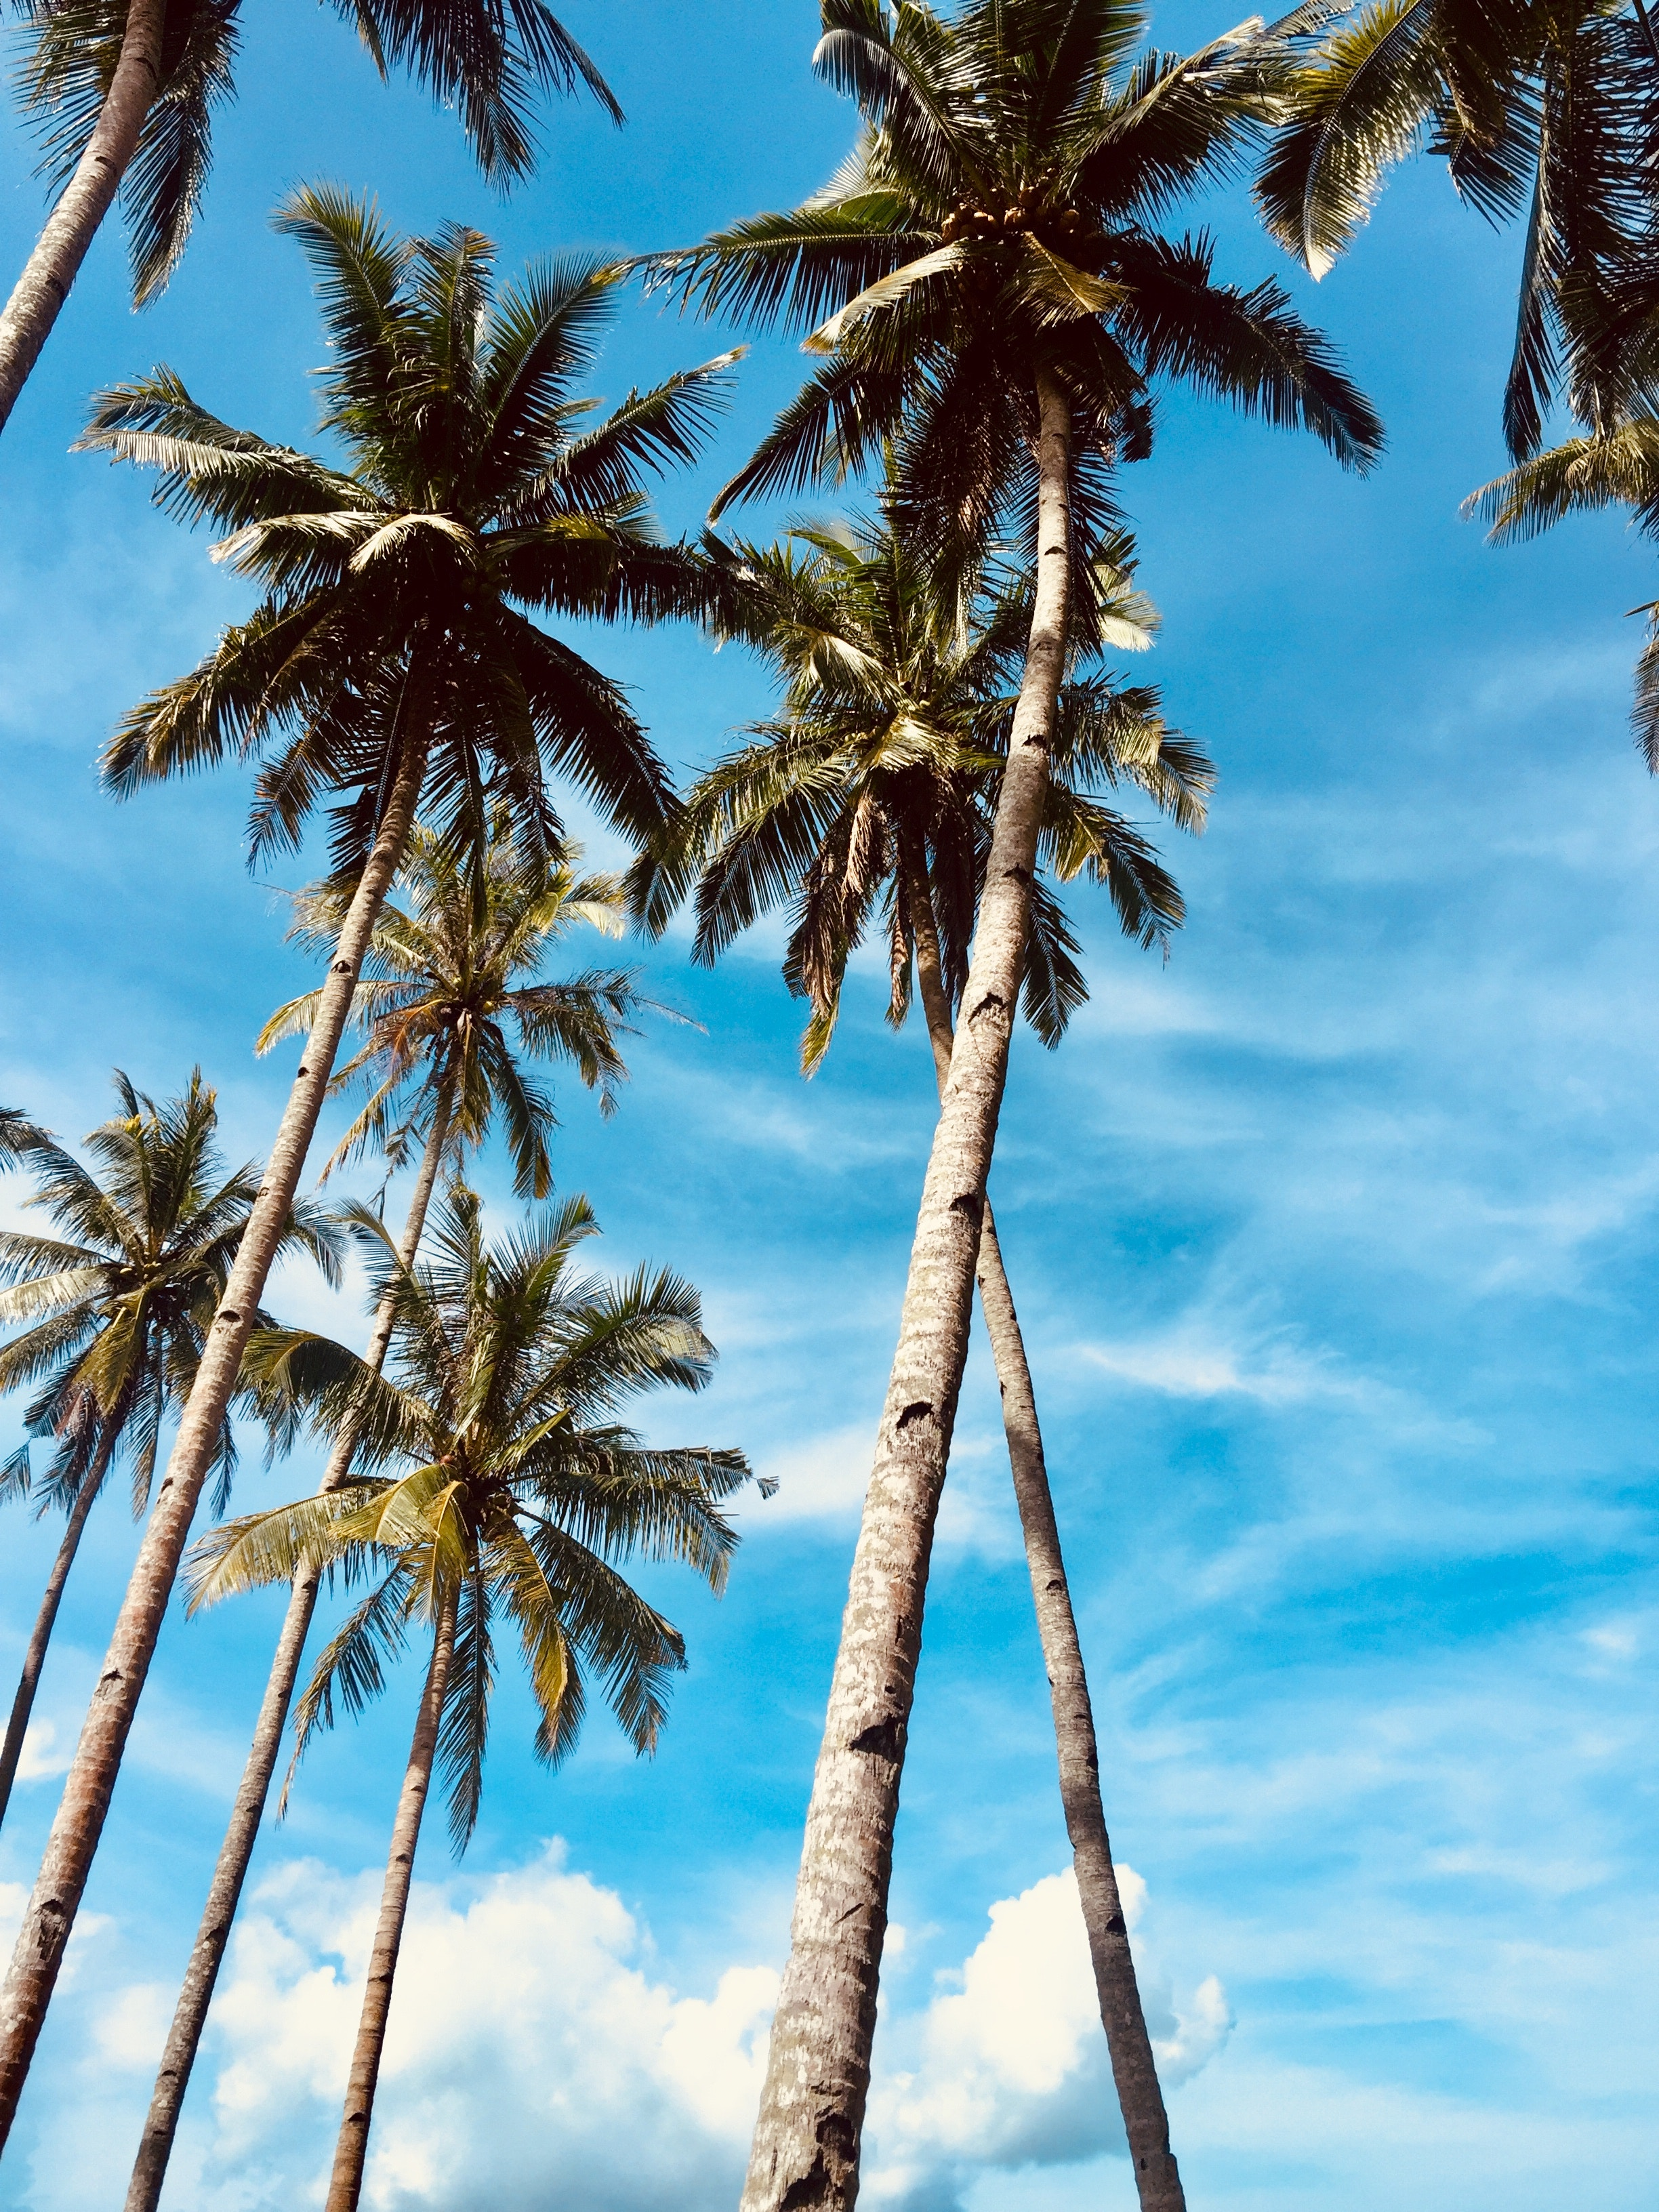 136630 download wallpaper Nature, Sky, Tropics, Trees, Palms screensavers and pictures for free